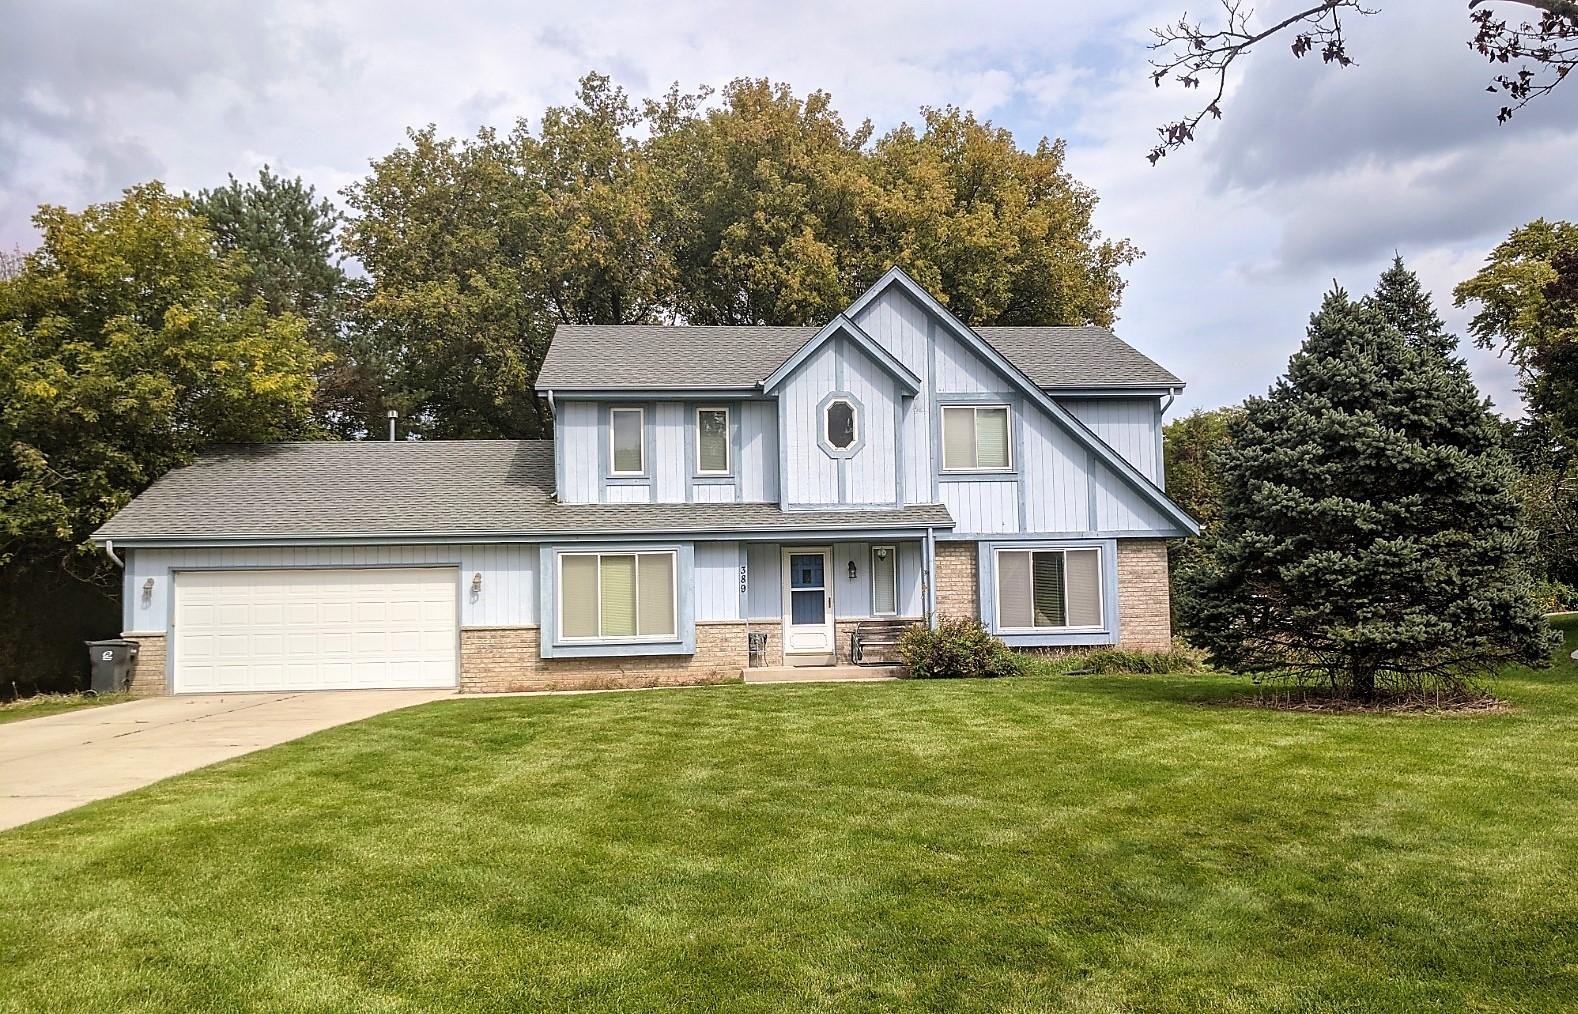 389 Cheshire Ct, Pewaukee, Wisconsin 53072, 3 Bedrooms Bedrooms, ,2 BathroomsBathrooms,Single-Family,For Sale,Cheshire Ct,1712172